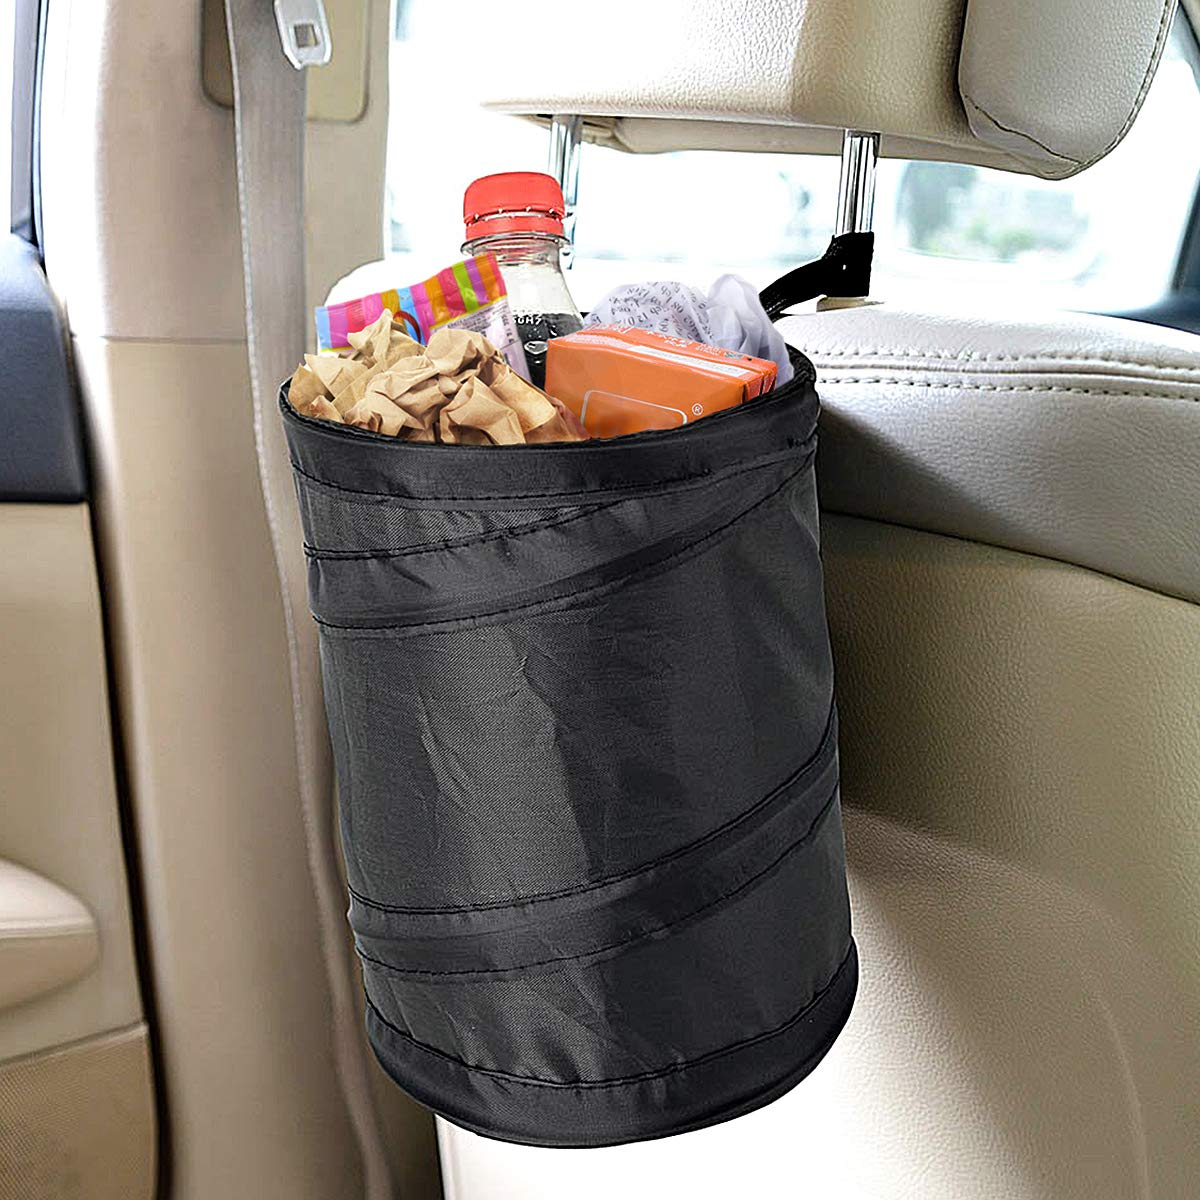 Binboll 2 Pack Leak Proof Car Trash Can Pop Up Water Proof Can Collapsible Garbage Bin Great Storage Universal Fit